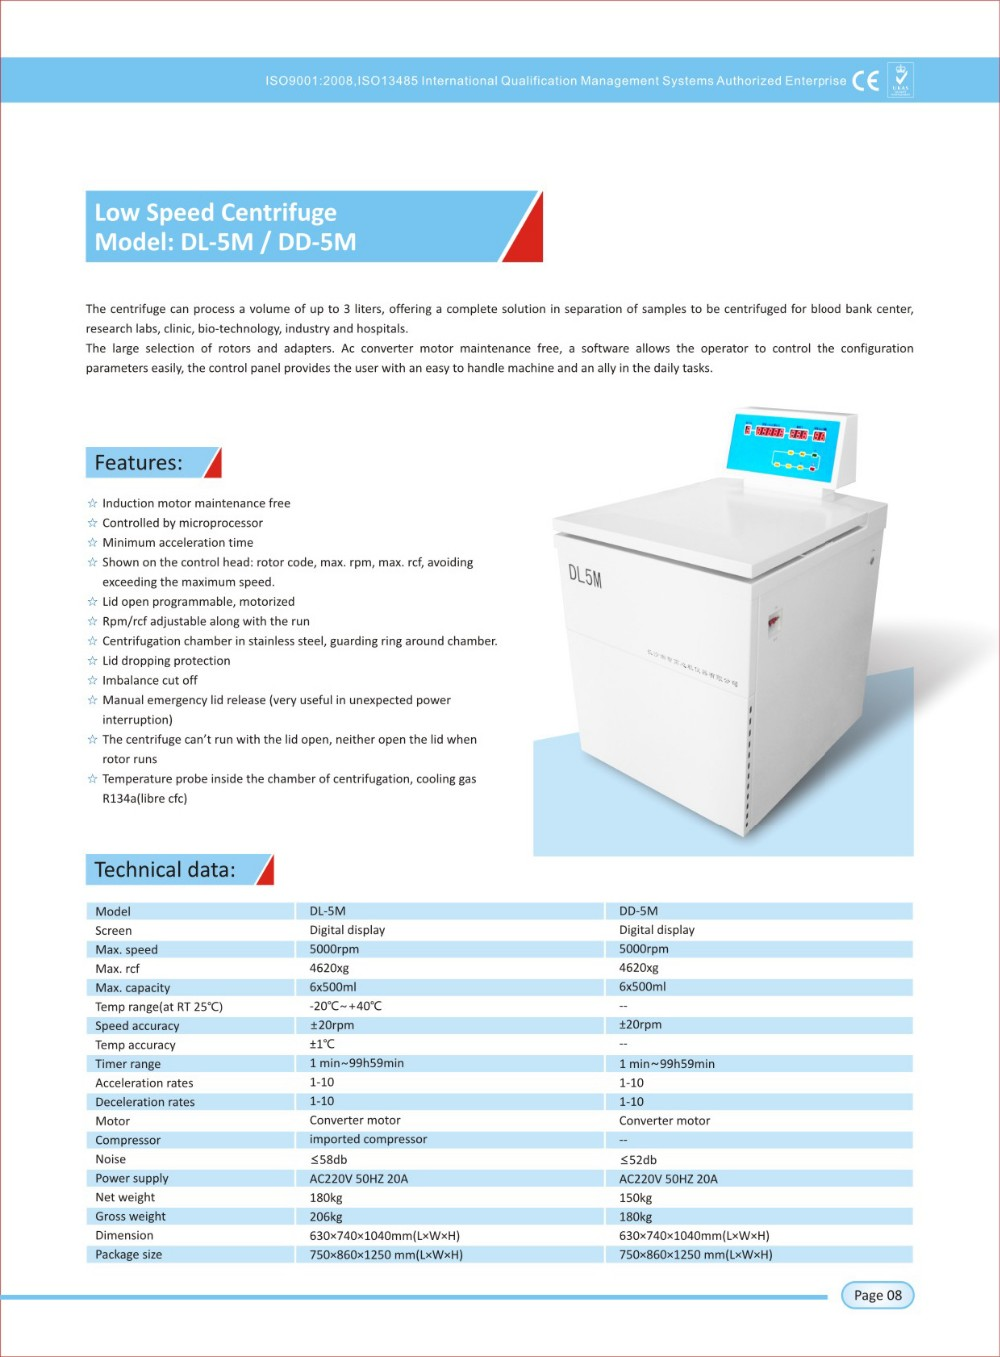 DL-5M floor stand low speed centrifuge